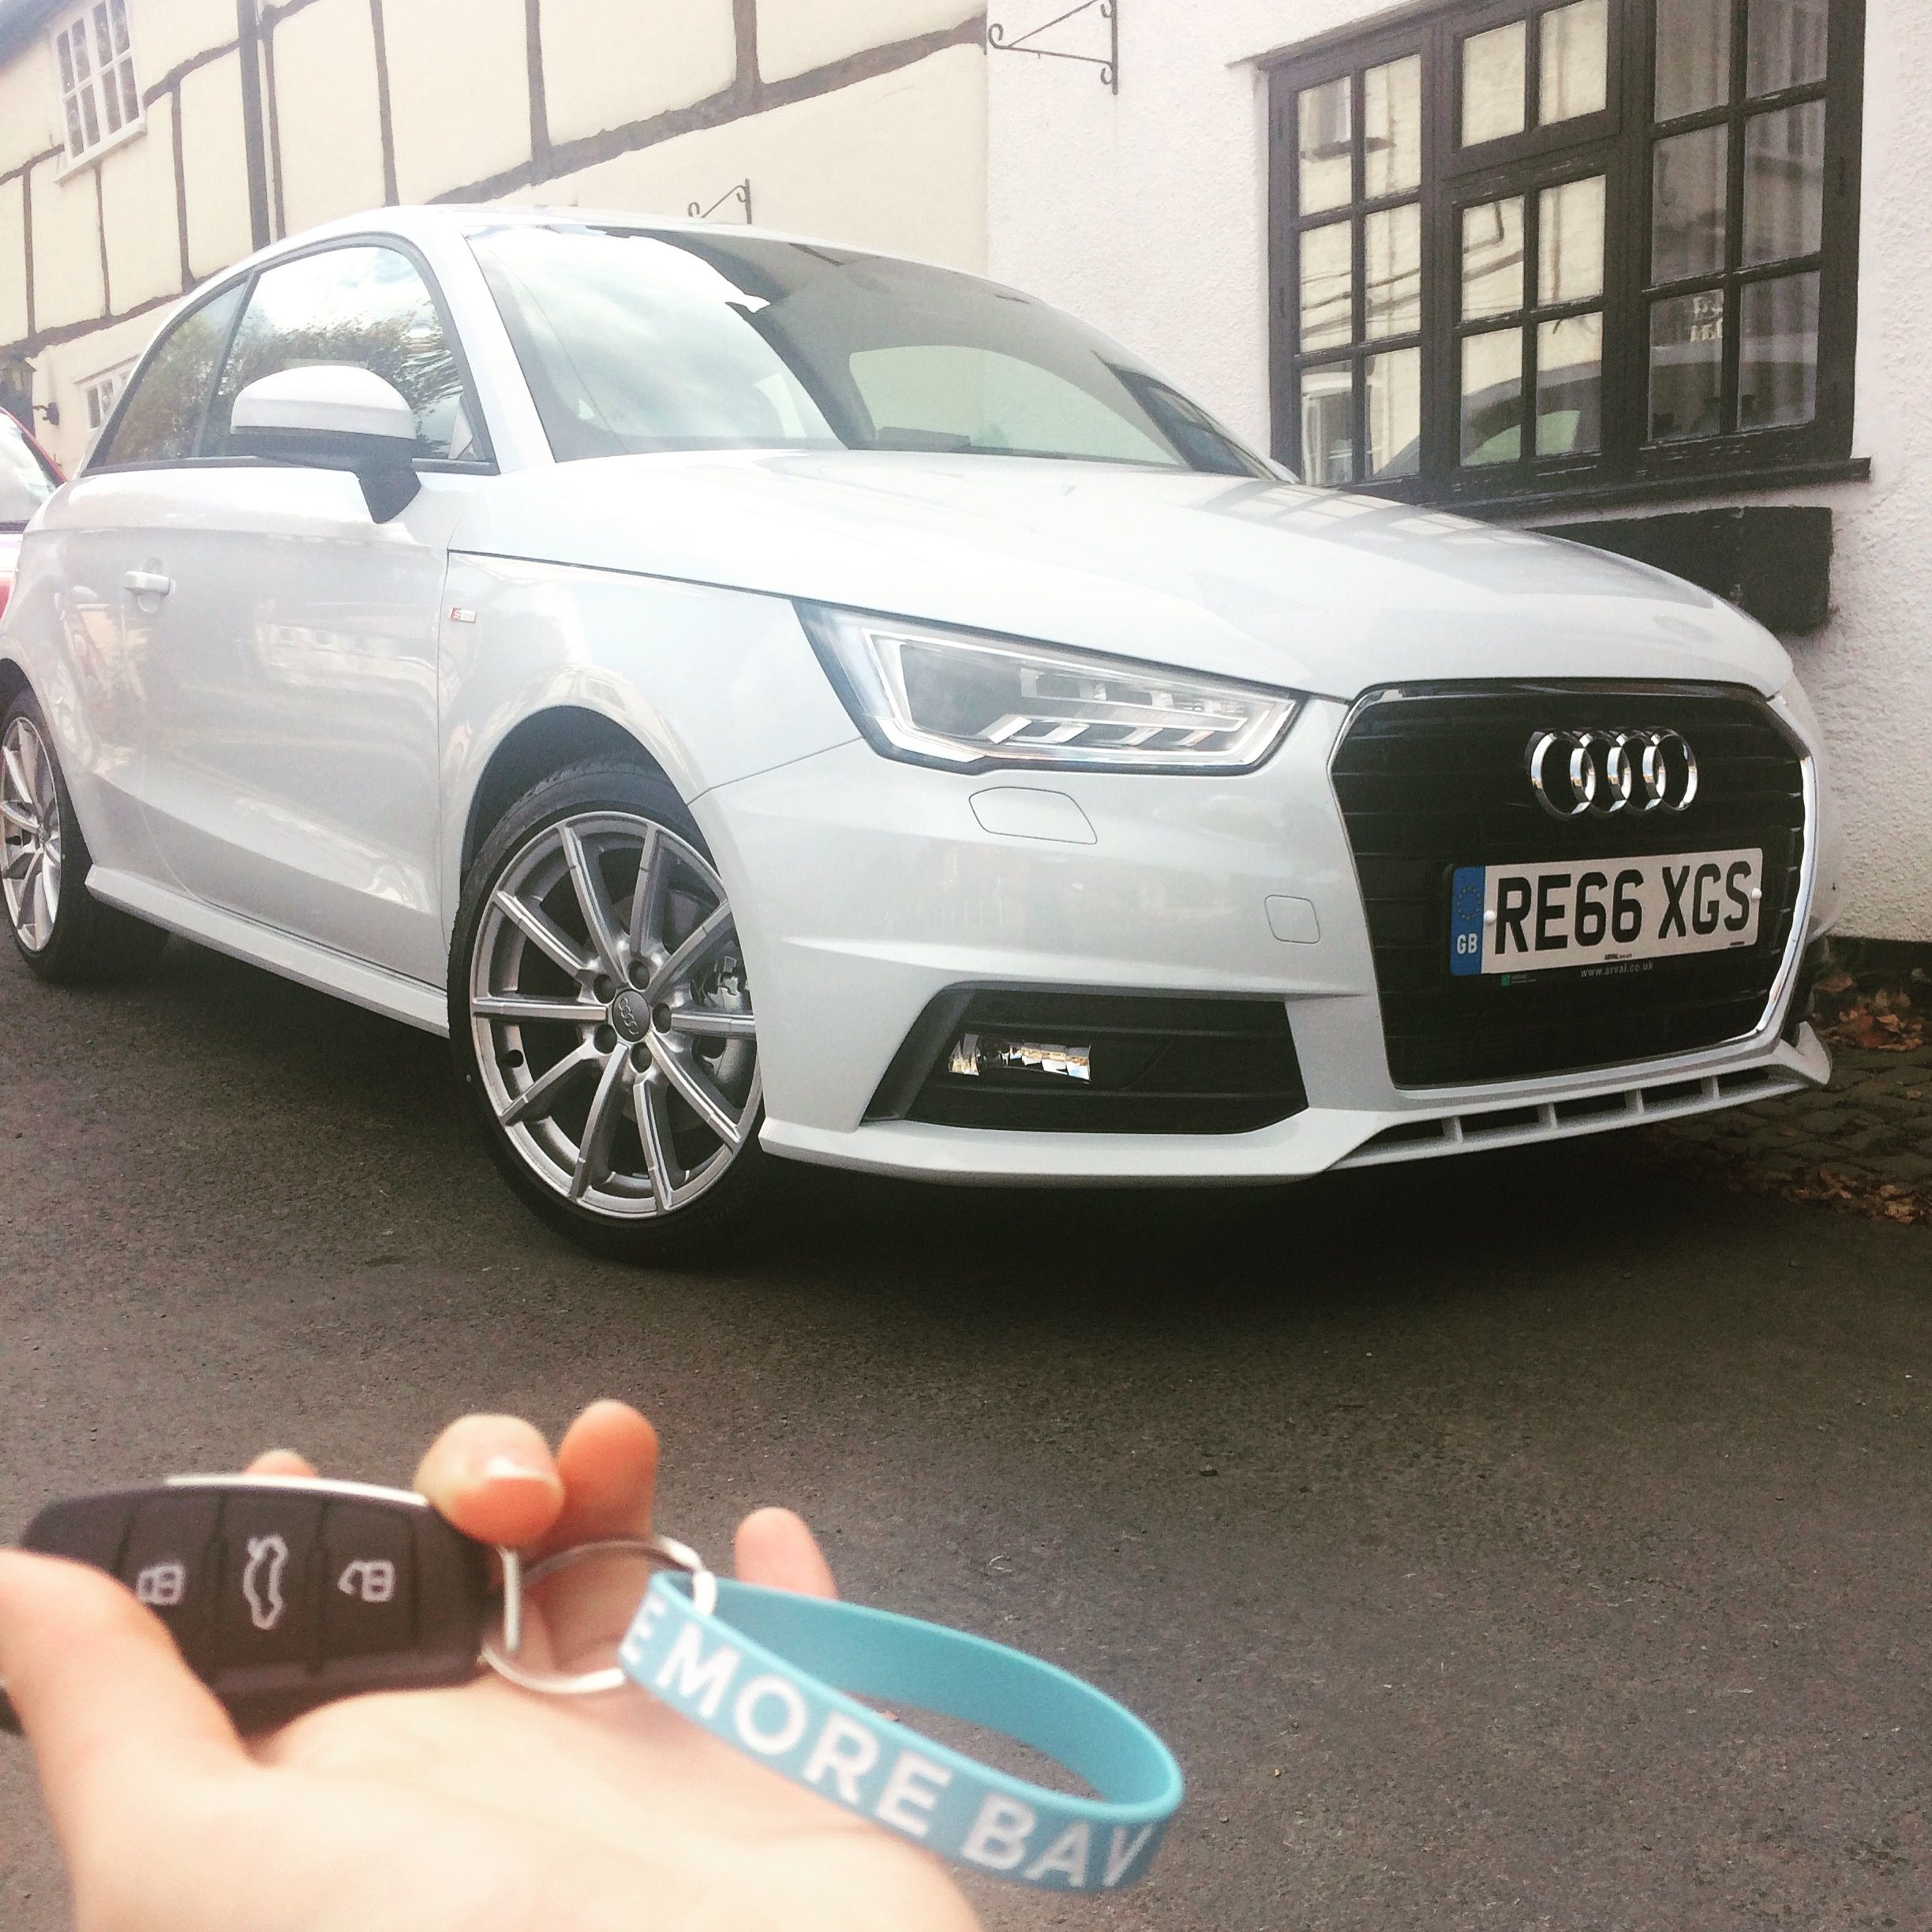 The Audi A1 Carleasing Deal One Of The Many Cars And Vans